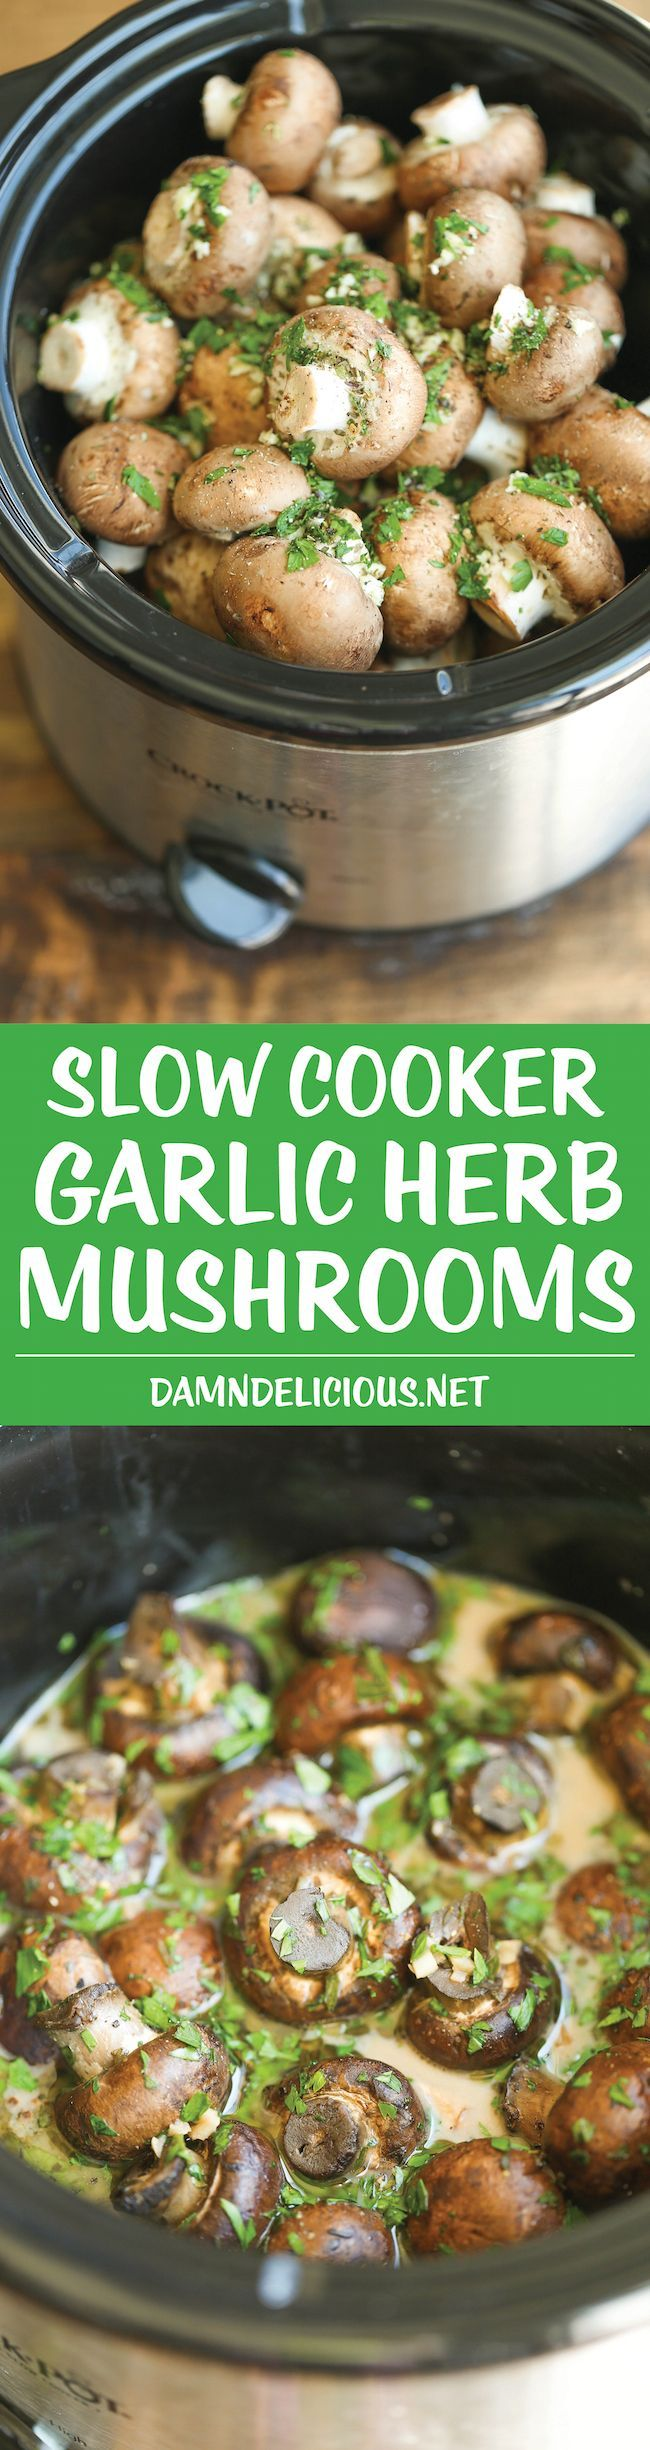 Slow Cooker Garlic Herb Mushrooms - The best and EASIEST way to make mushrooms - in a crockpot with garlic, herbs and of course, butter! Just 5 min prep!